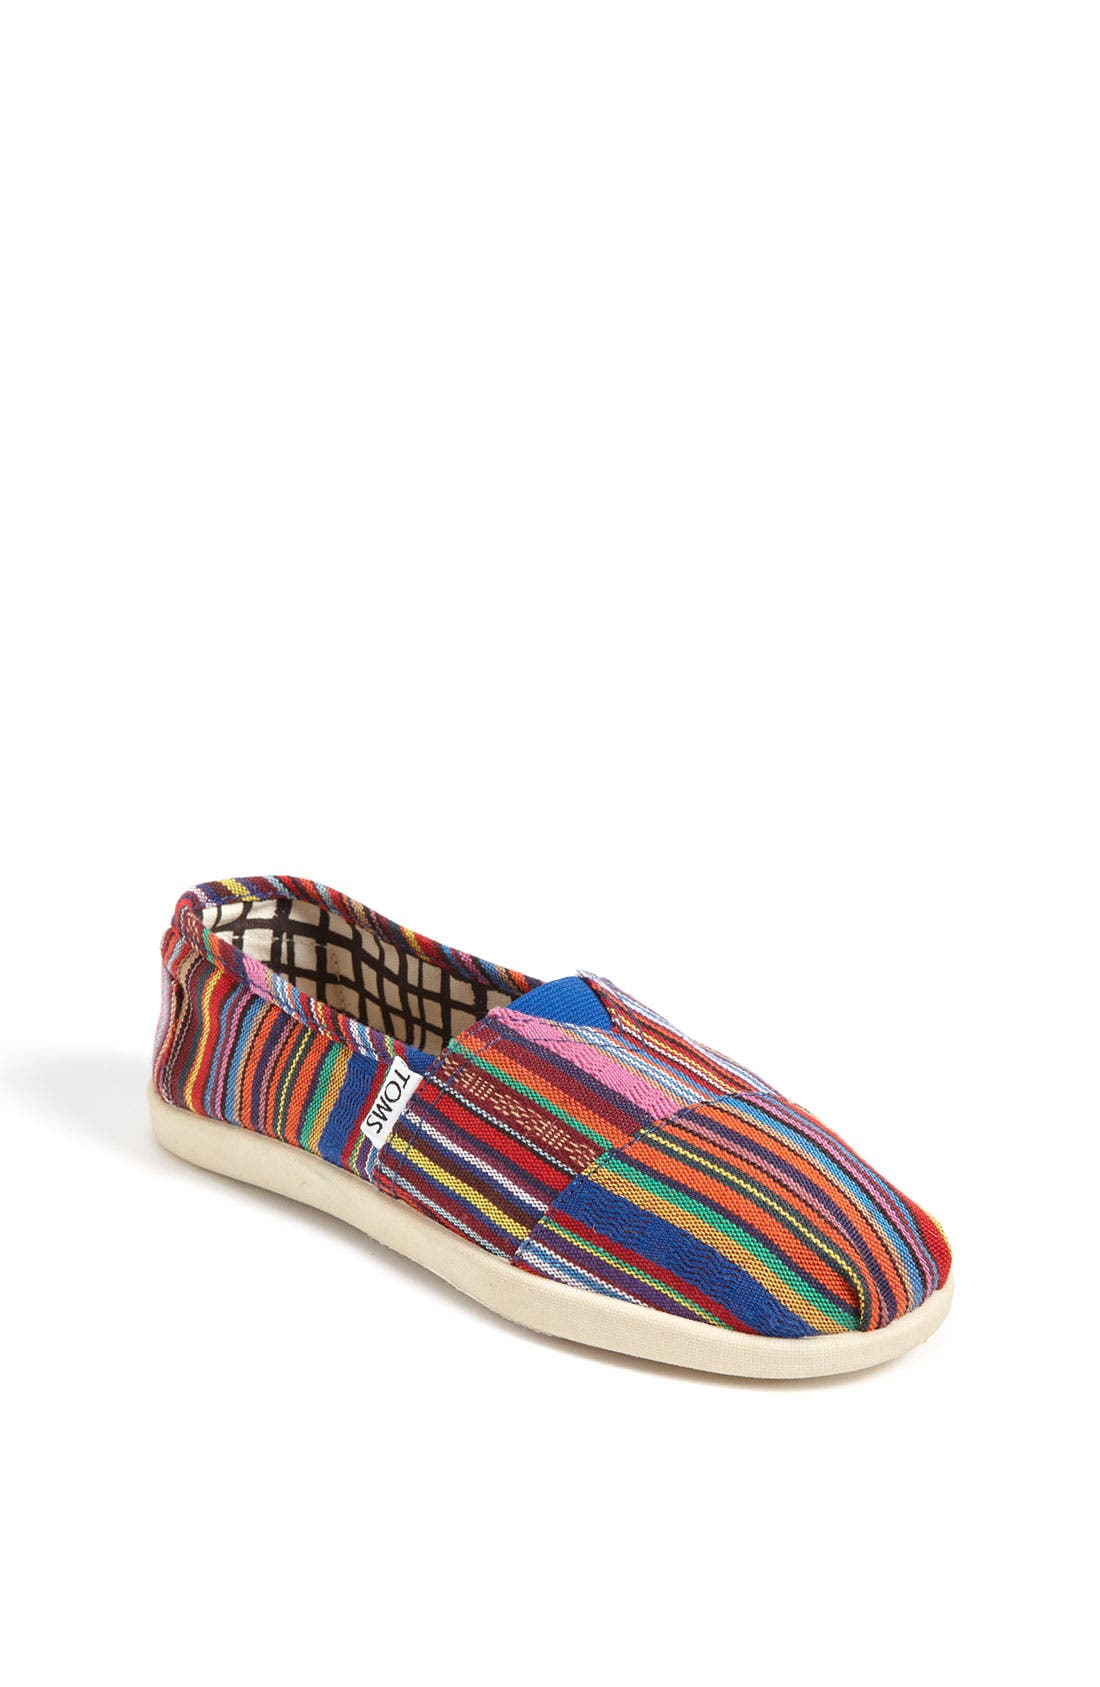 Main Image - TOMS 'Cruz - Youth' Canvas Slip-On (Toddler, Little Kid & Big Kid)